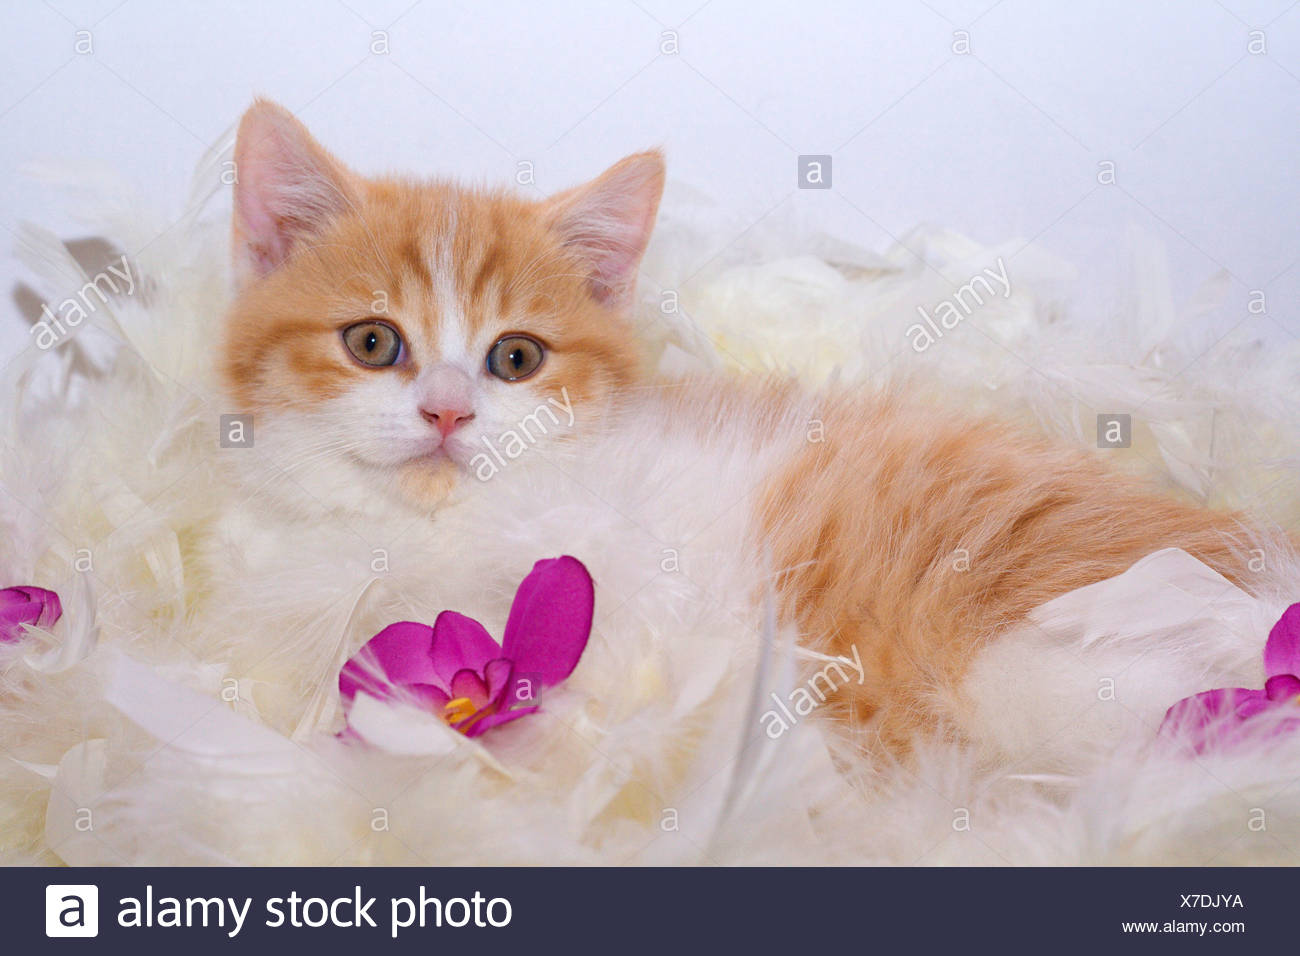 British Shorthair (Felis silvestris f. catus), nine weeks old red and white tomcat lying on a feather boa Stock Photo